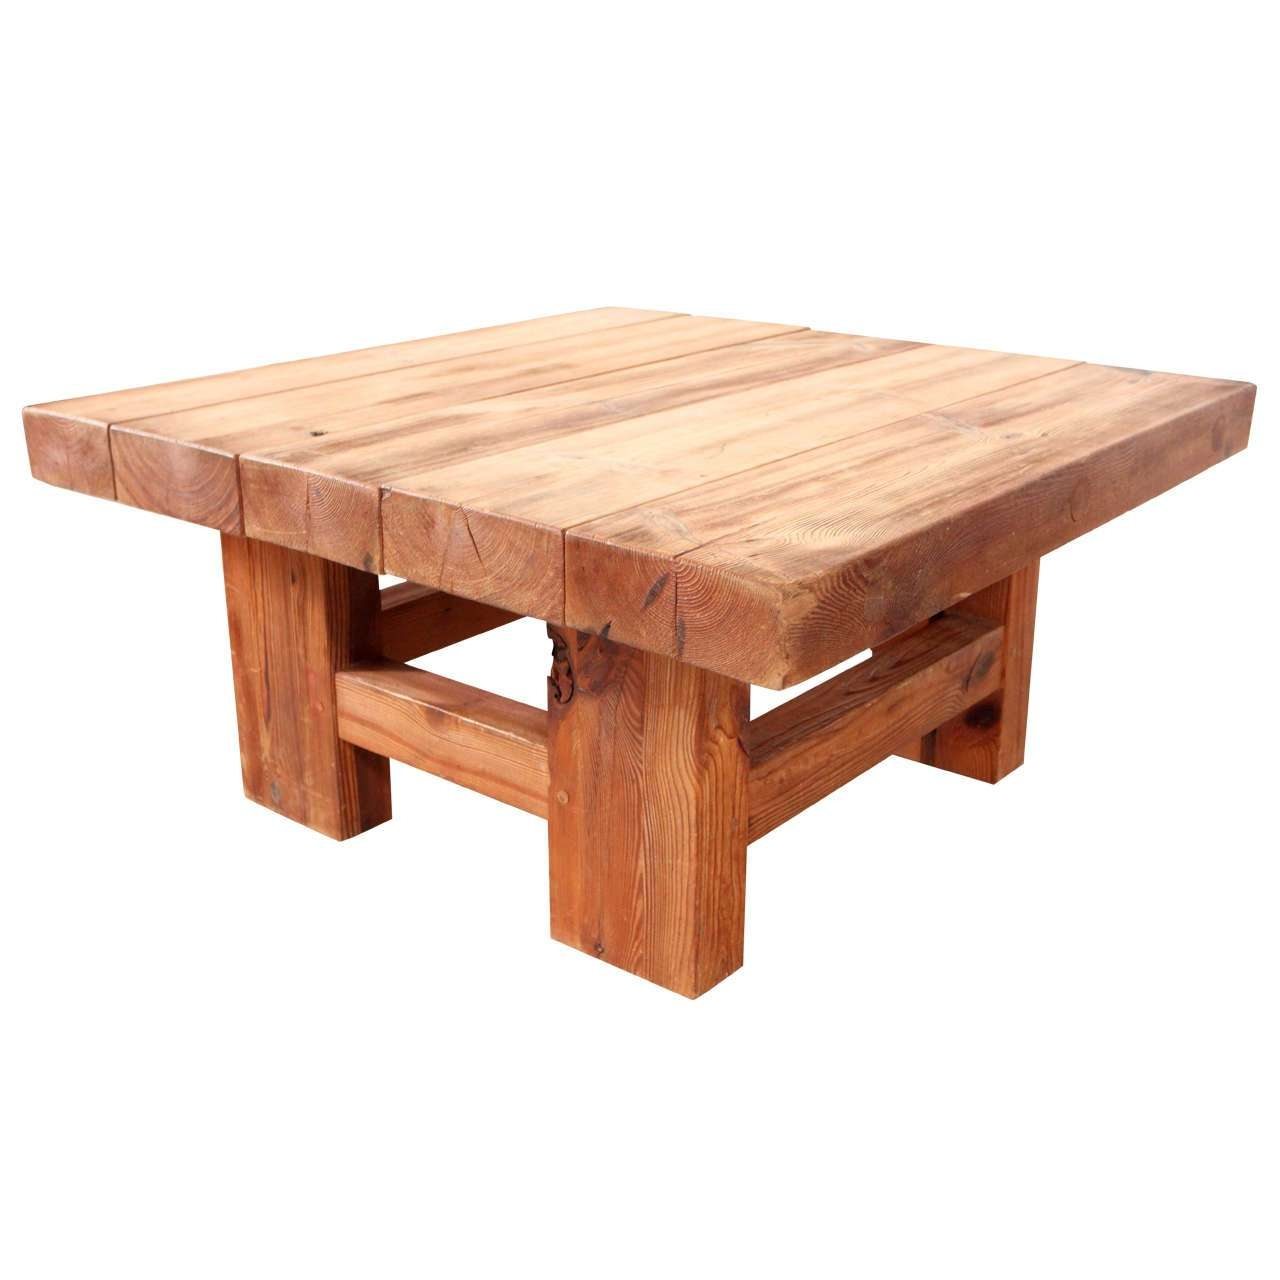 Widely Used Solid Wood Coffee Tables Within Coffee Table : Solid Wood Block Coffee Table Simple Low Rustic (View 20 of 20)